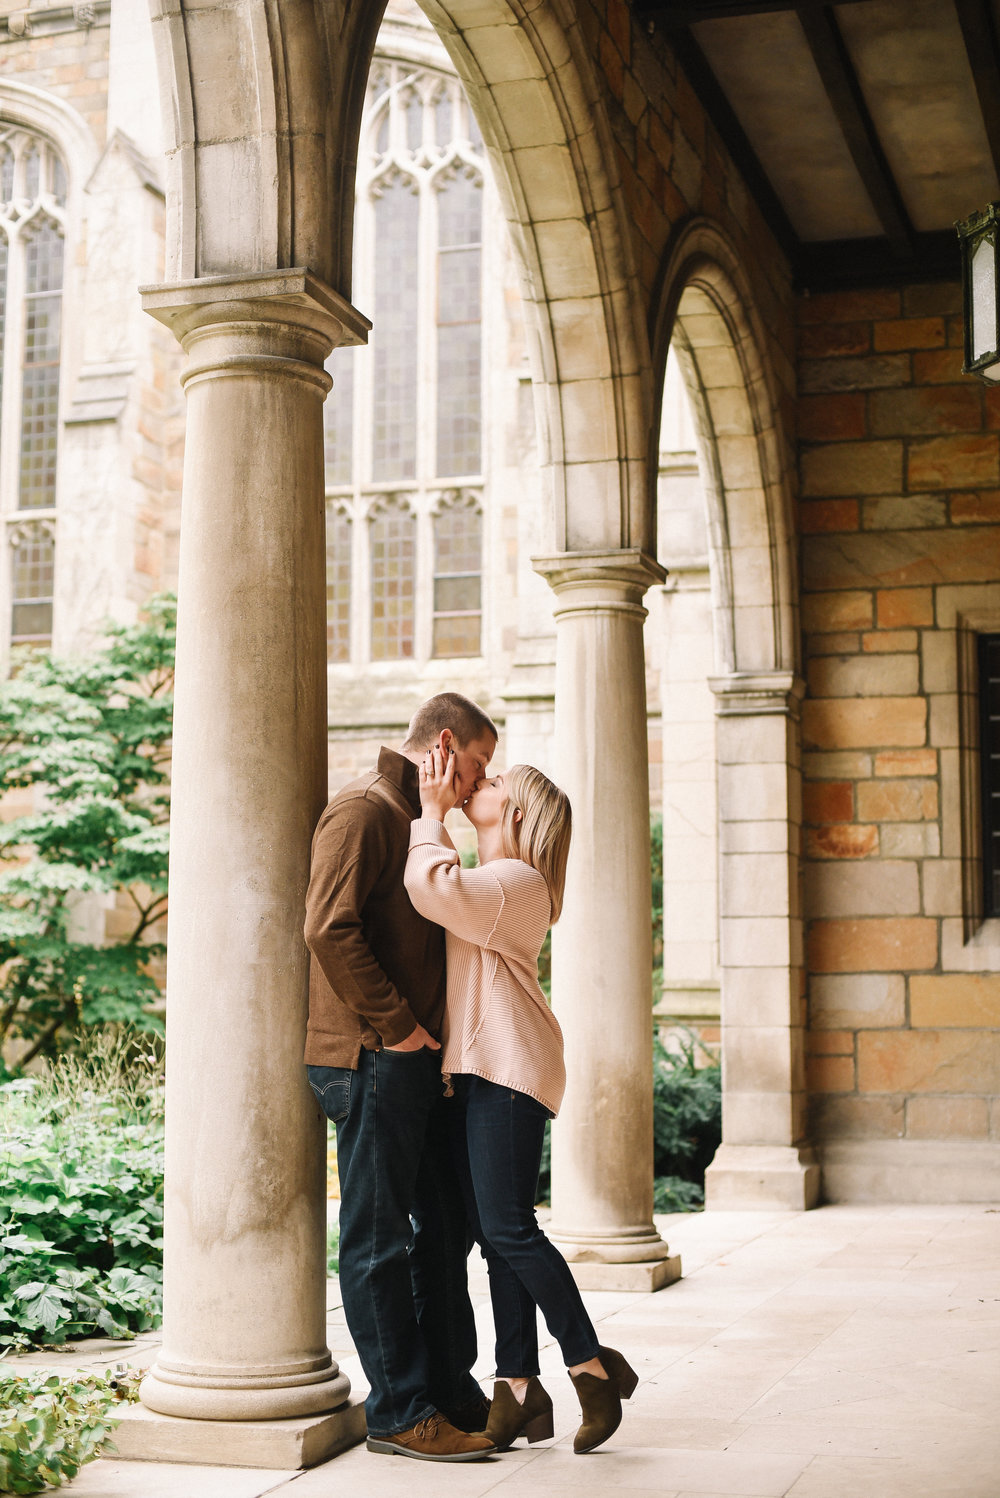 Law_Quad_Ann_Arbor_Engagement_Photos-6.jpg